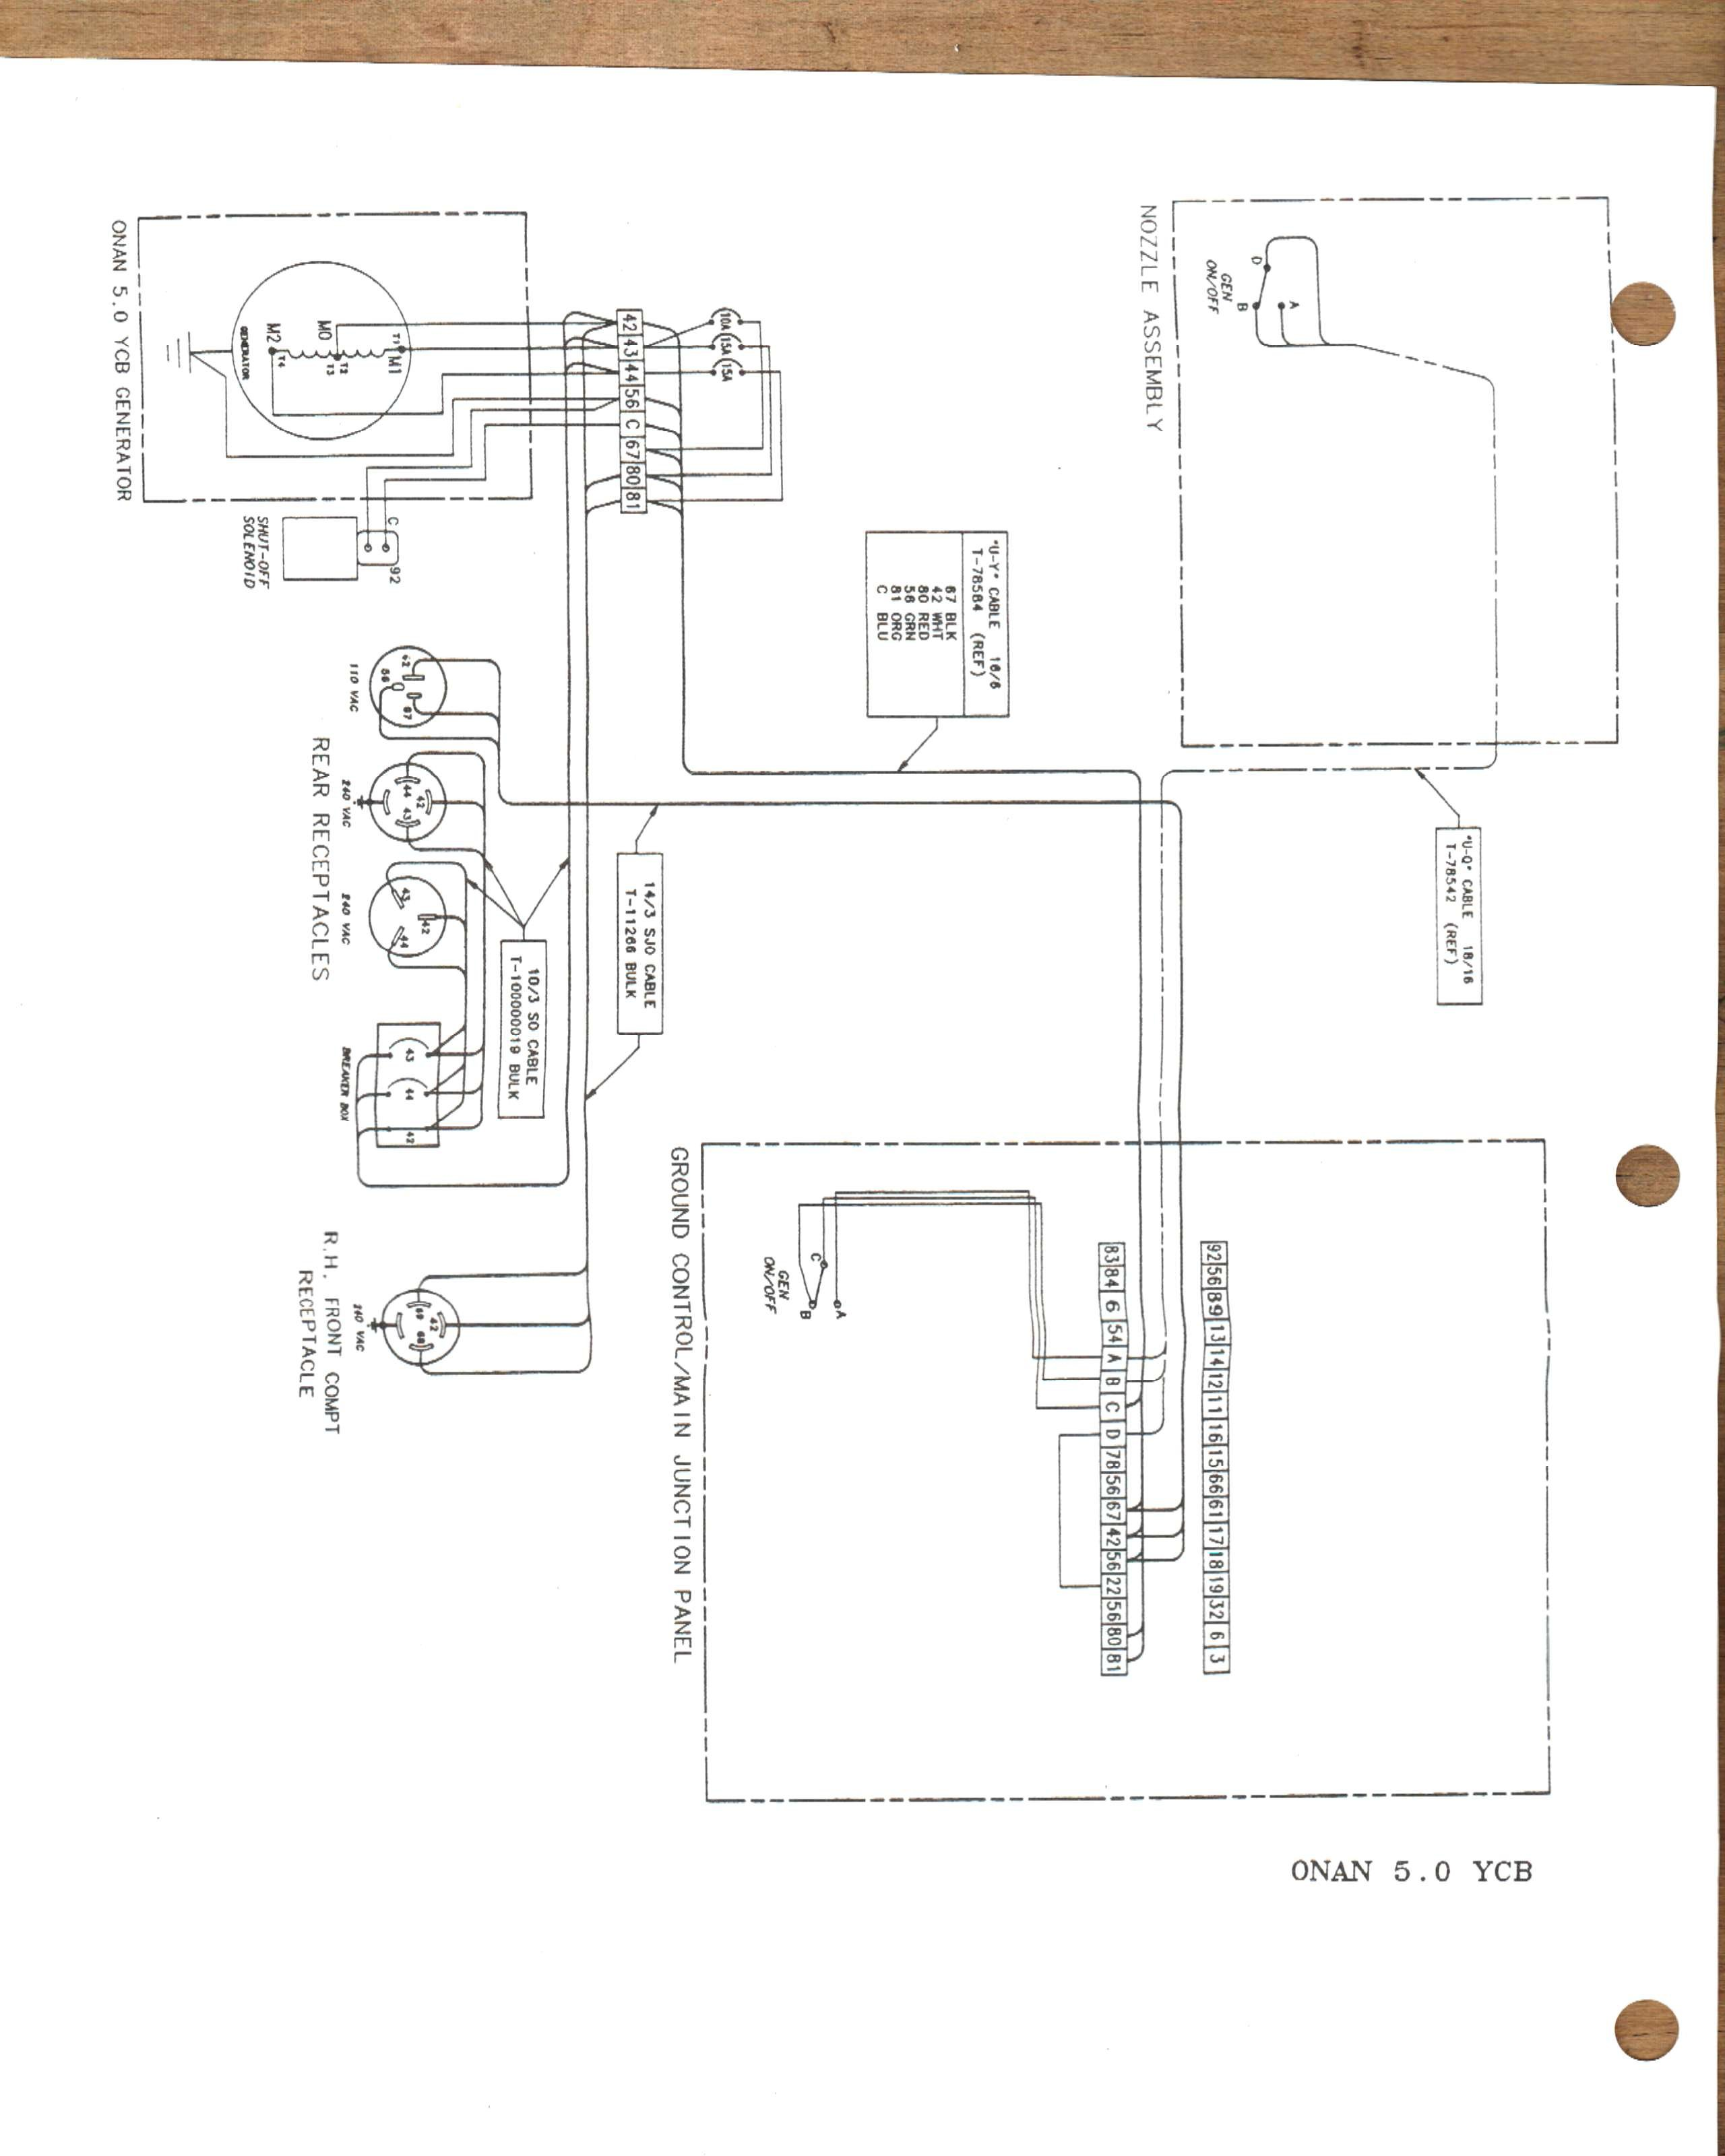 2013 12 10_065305_telsta_011 versalift wiring diagram diagrams versalift wiring f192226 link belt 3400 excavator wiring diagram at gsmportal.co